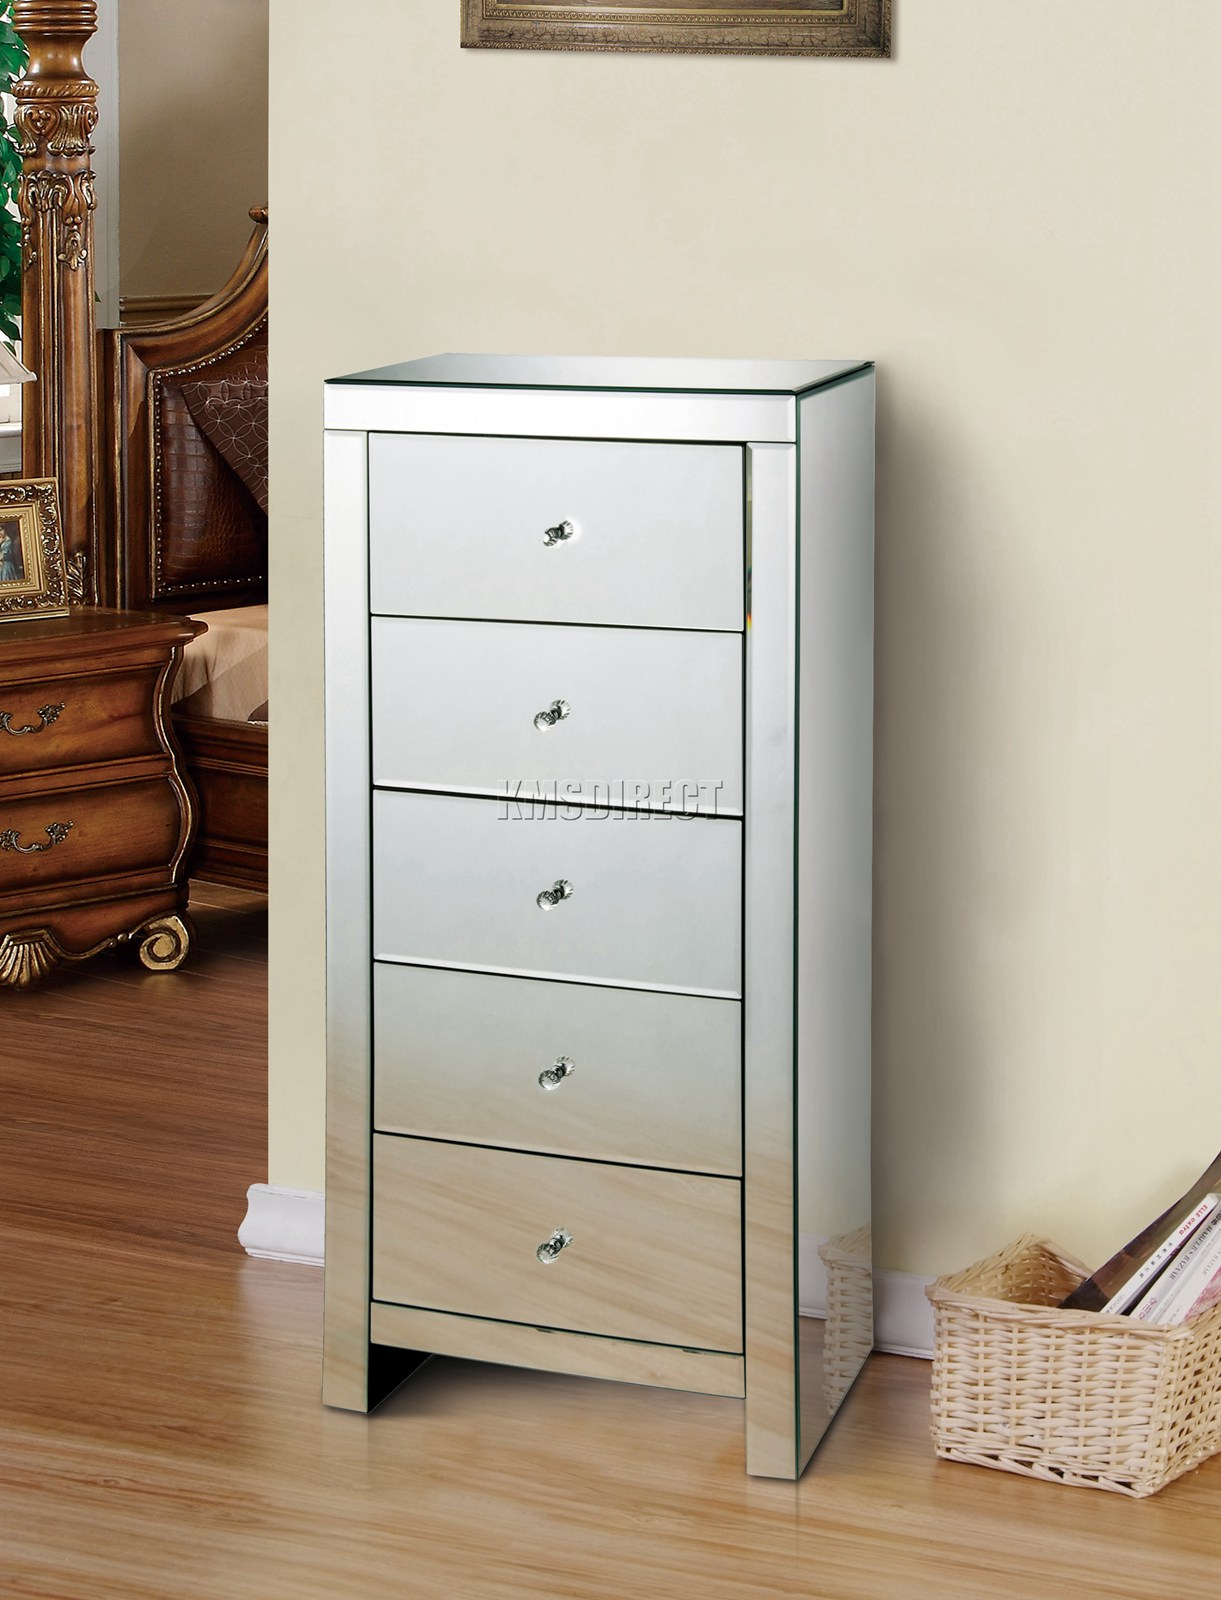 Details About Westwood Mirrored Furniture Gl Tallboy Chest Cabinet With 5 Drawer Mtc01 New